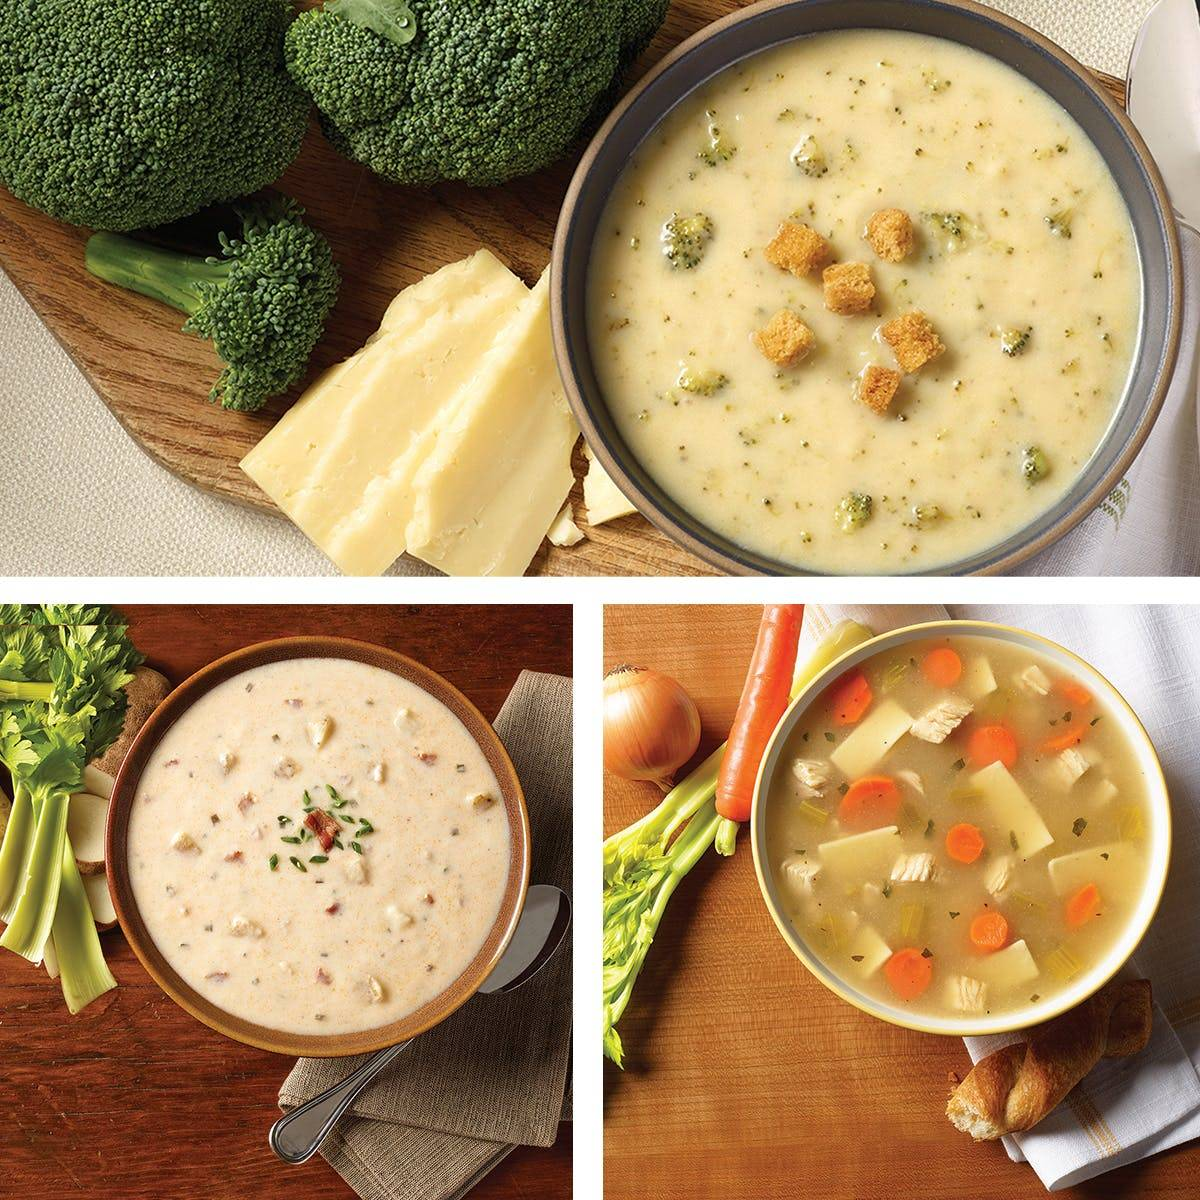 Blount's Family Kitchen Soups - Soup - Choose Your Own: BUY 3 GET 3 FREE